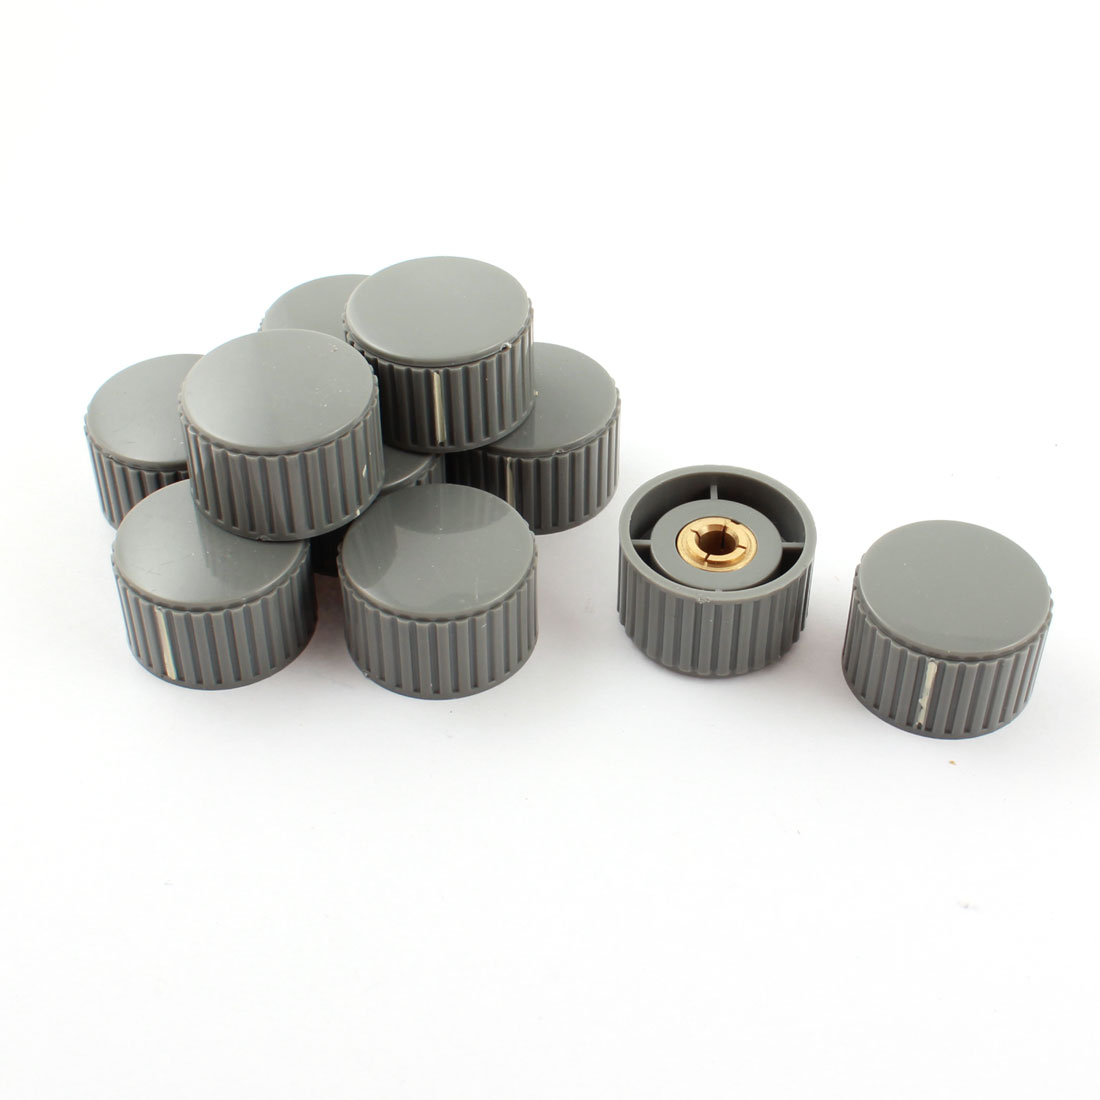 10Pcs 32mm Nonslip Gray Plastic Volume Control Rotary Potentiometer Encoder Knob for 6mm Dia Shaft